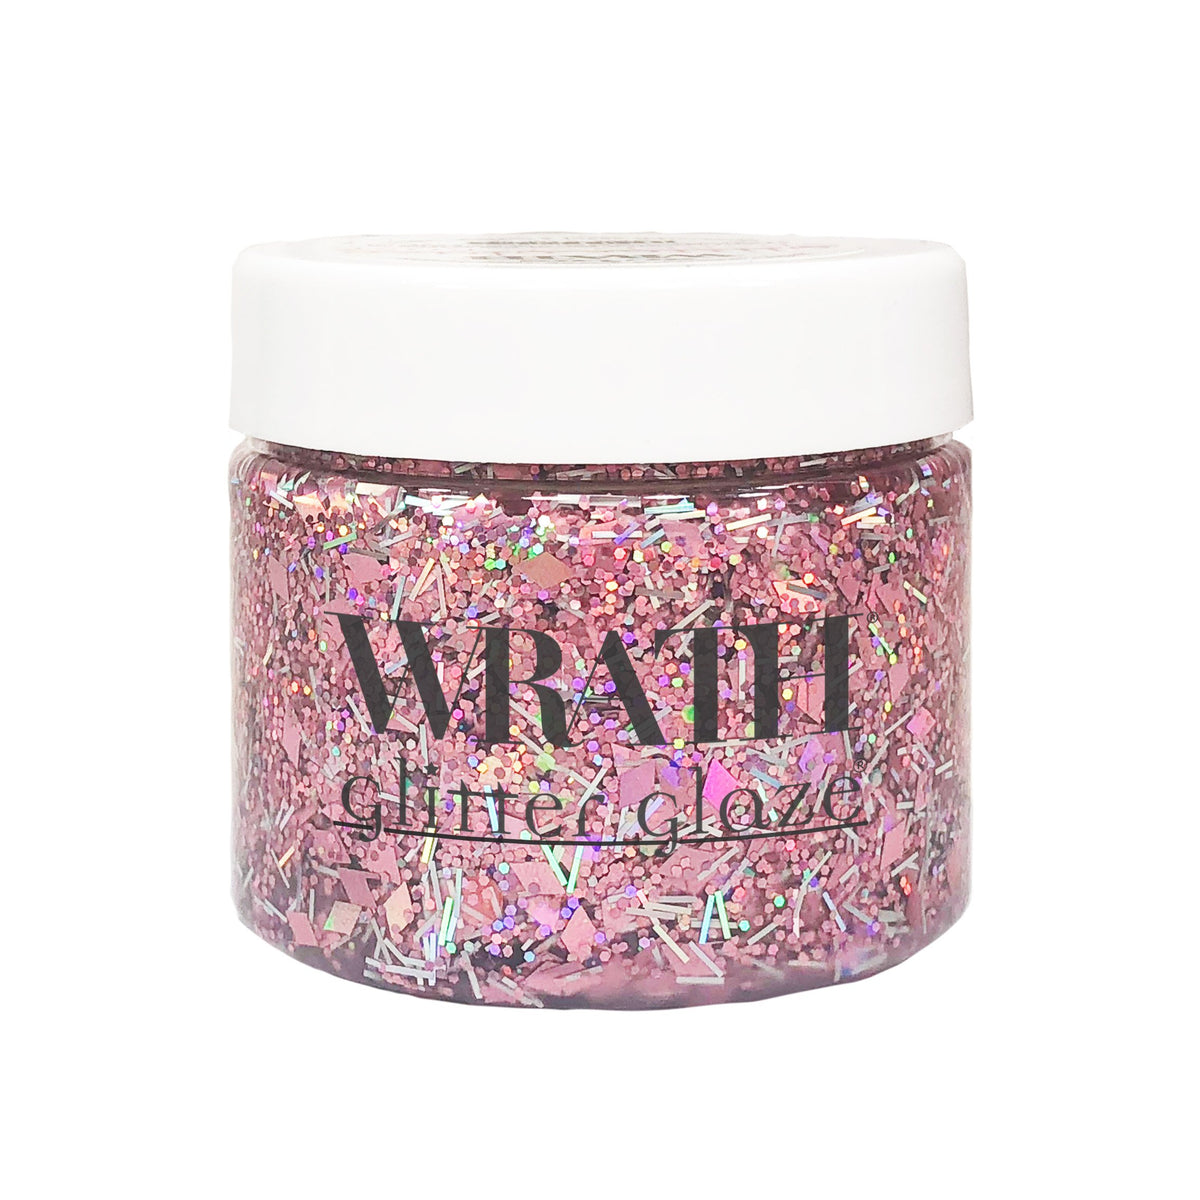 WRATH Glitter Glaze® - Glitter Gel Paint for Face, Body & Hair